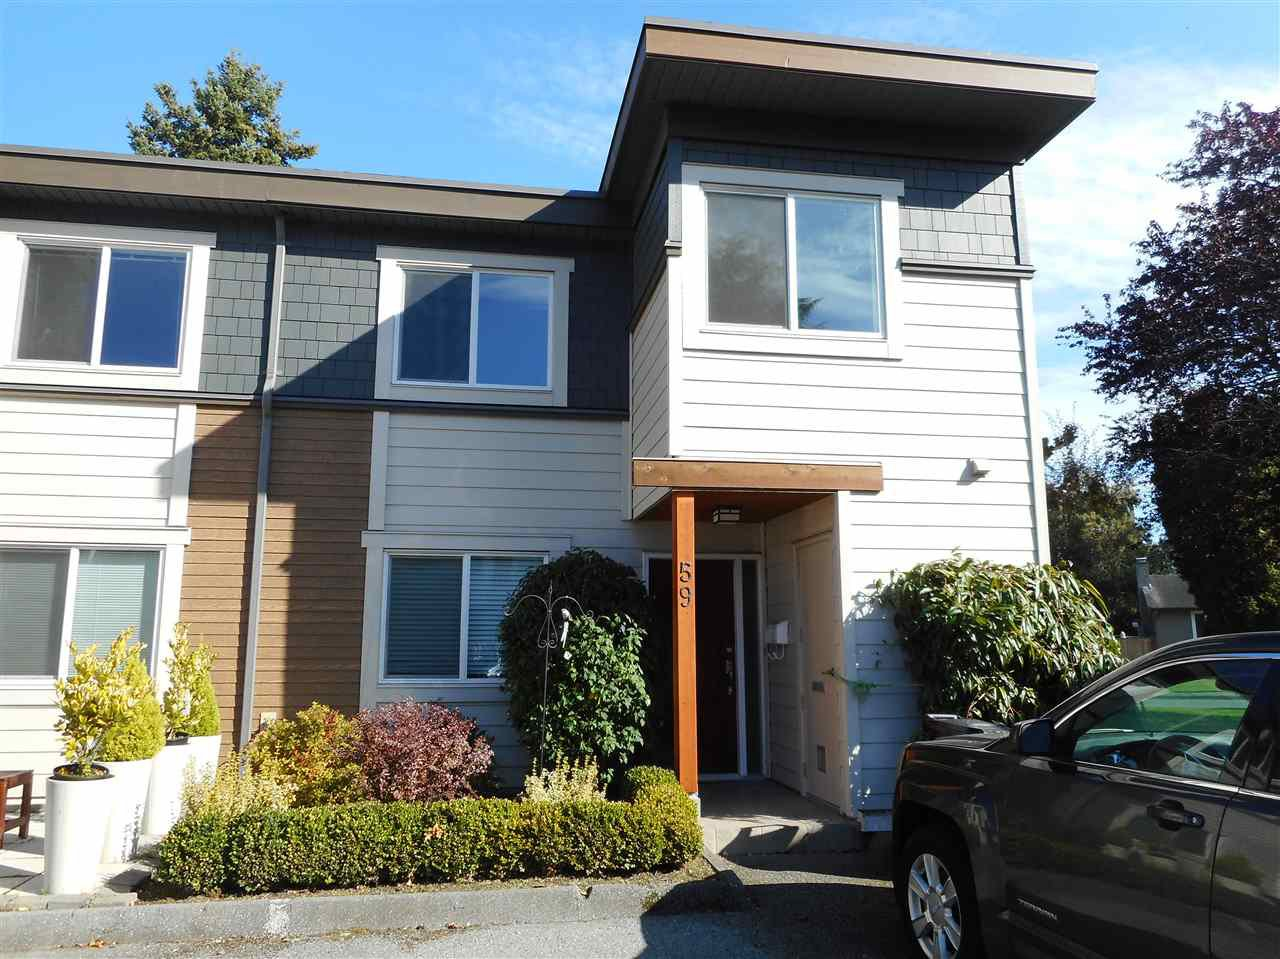 Main Photo: 59 3251 SPRINGFIELD DRIVE in Richmond: Steveston North Townhouse for sale : MLS®# R2411374